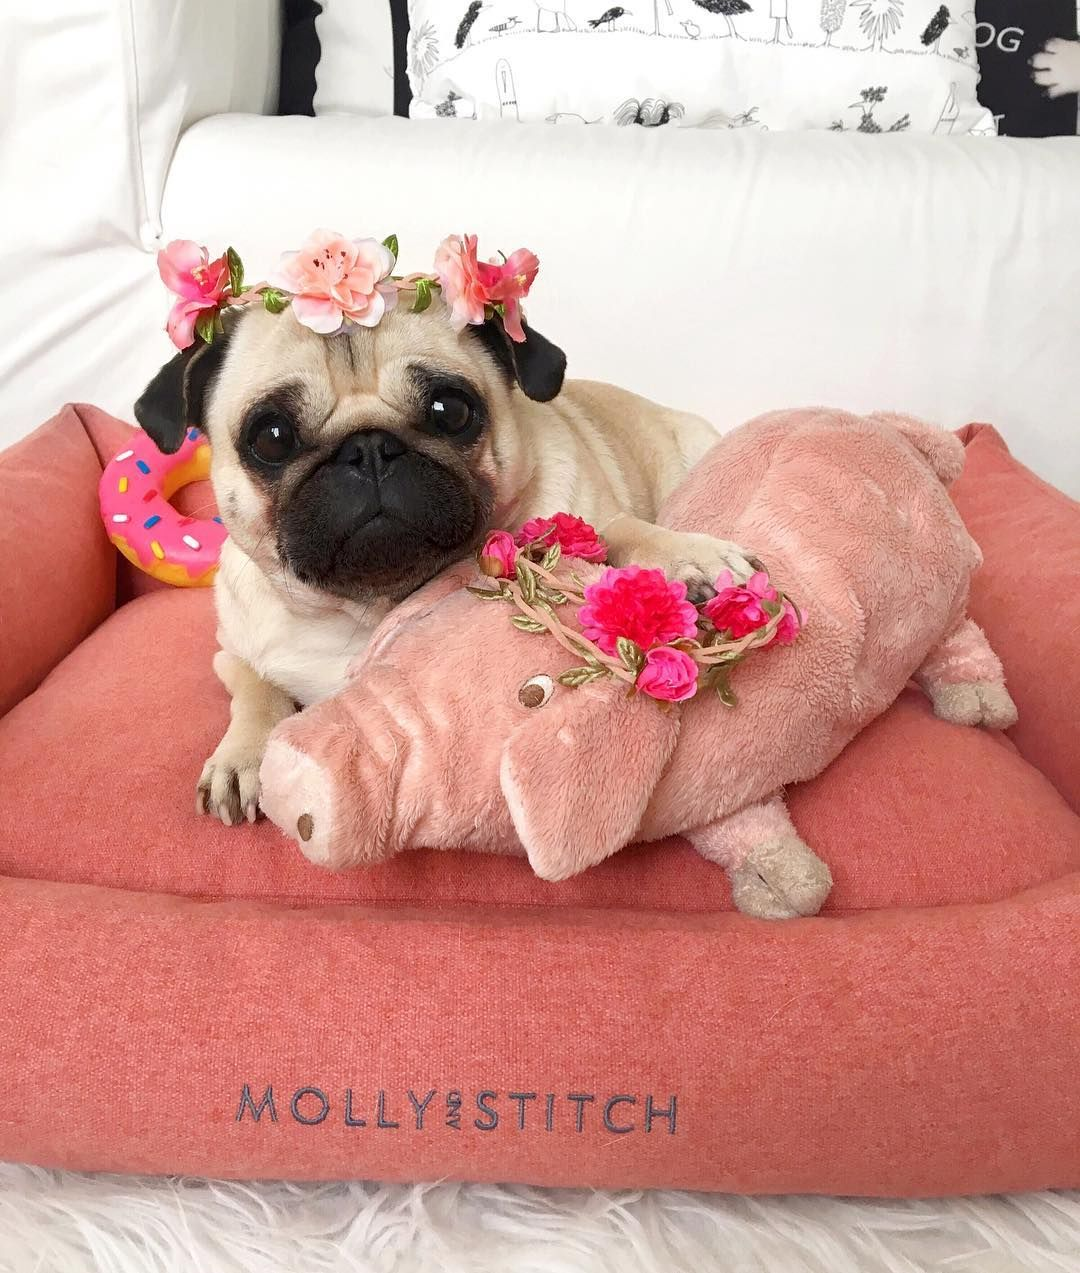 Loulou The Pug And Piggy Cuddling In Our Sweet Dreams Bed 3